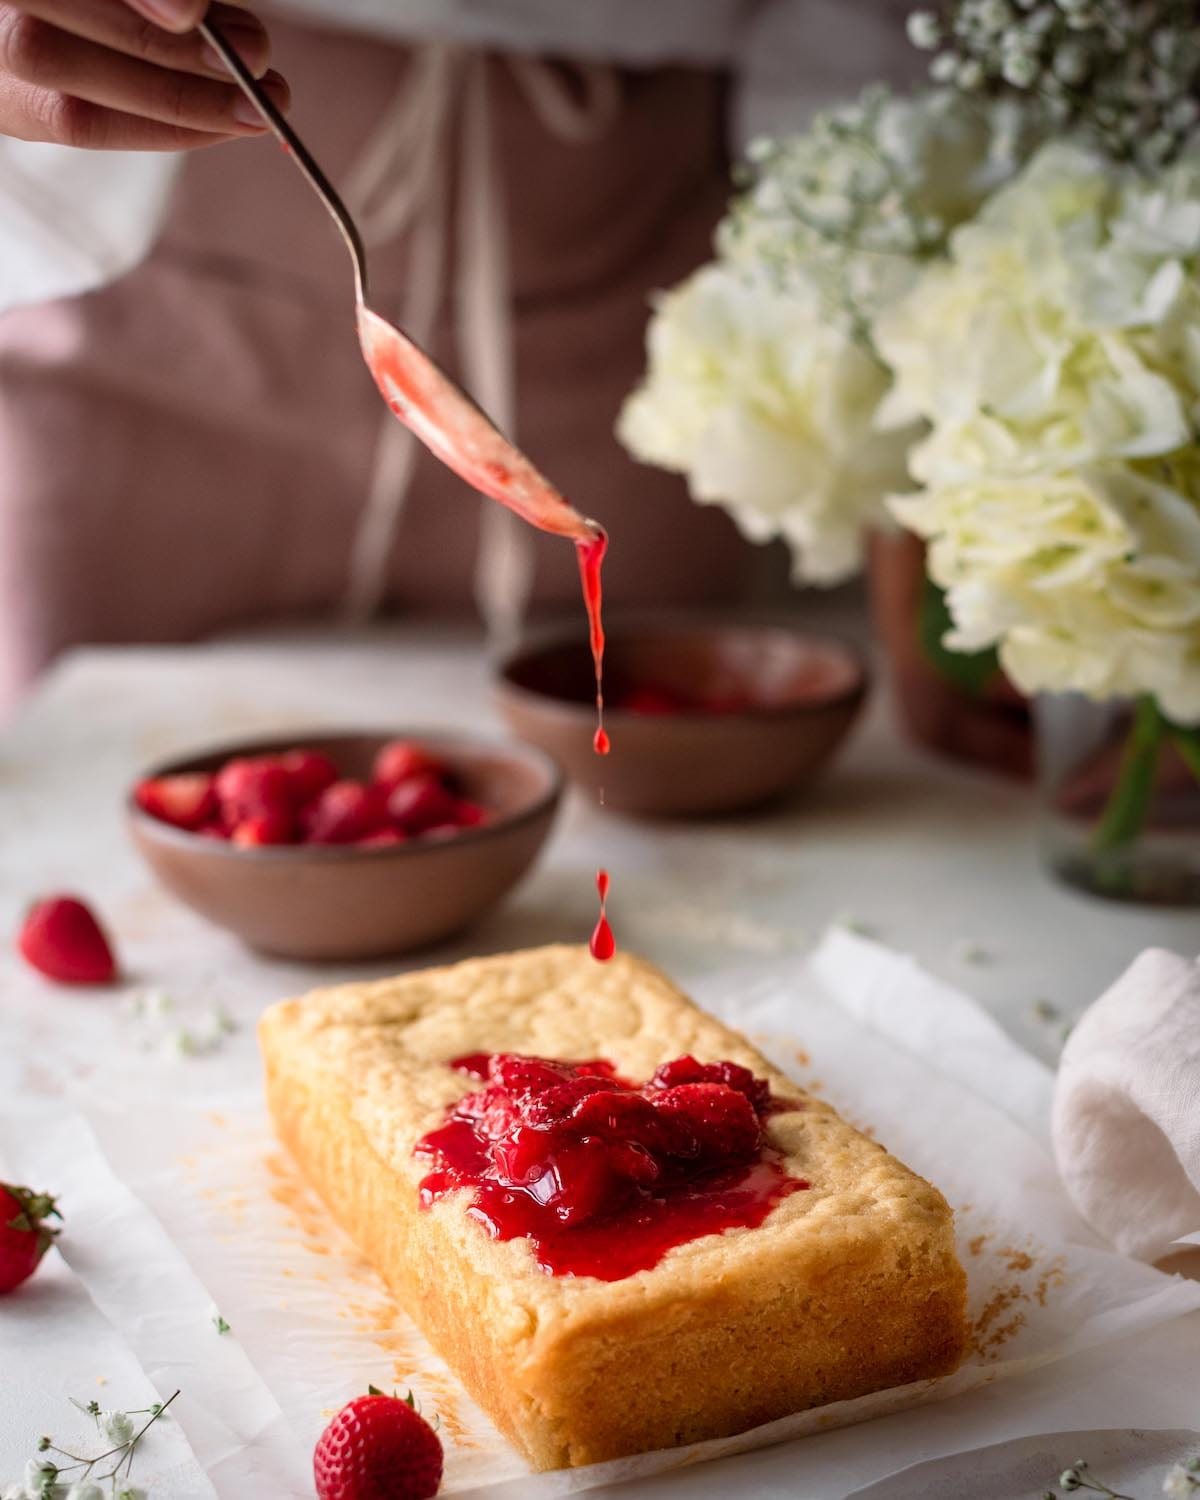 woman drizzling strawberry sauce onto lemon olive oil cake in romantic food photography scene